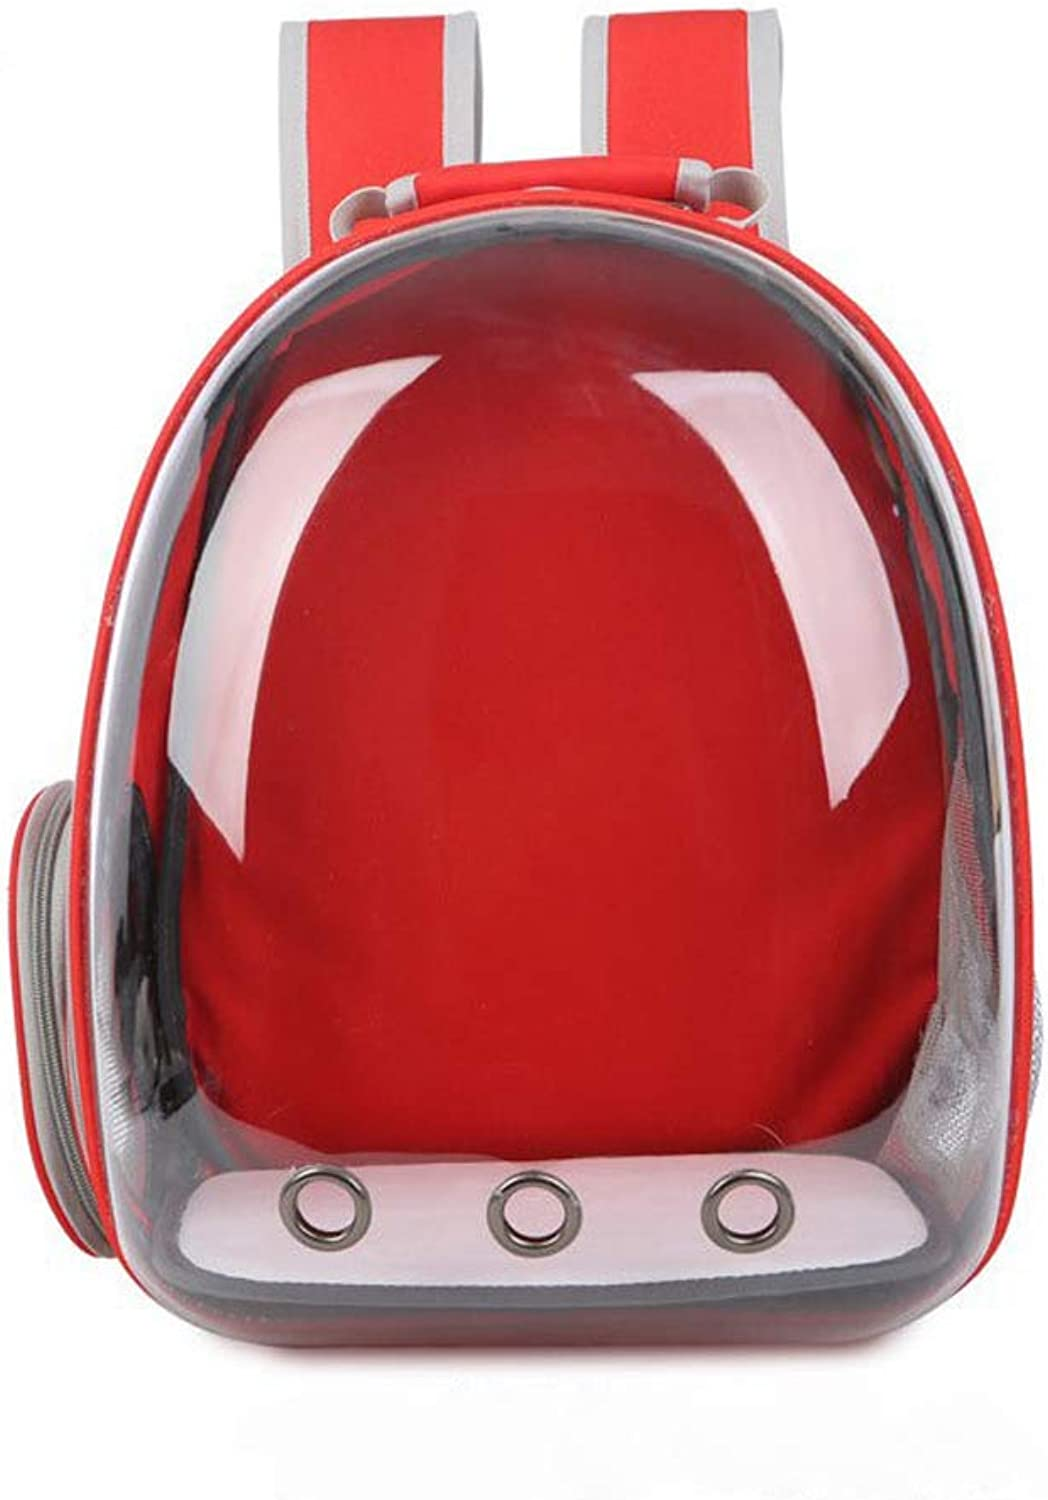 Bzd Full Transparent Space Pet Bag Three Air Breathable Cat Backpack Pet Space Capsule Outing Pet Backpack